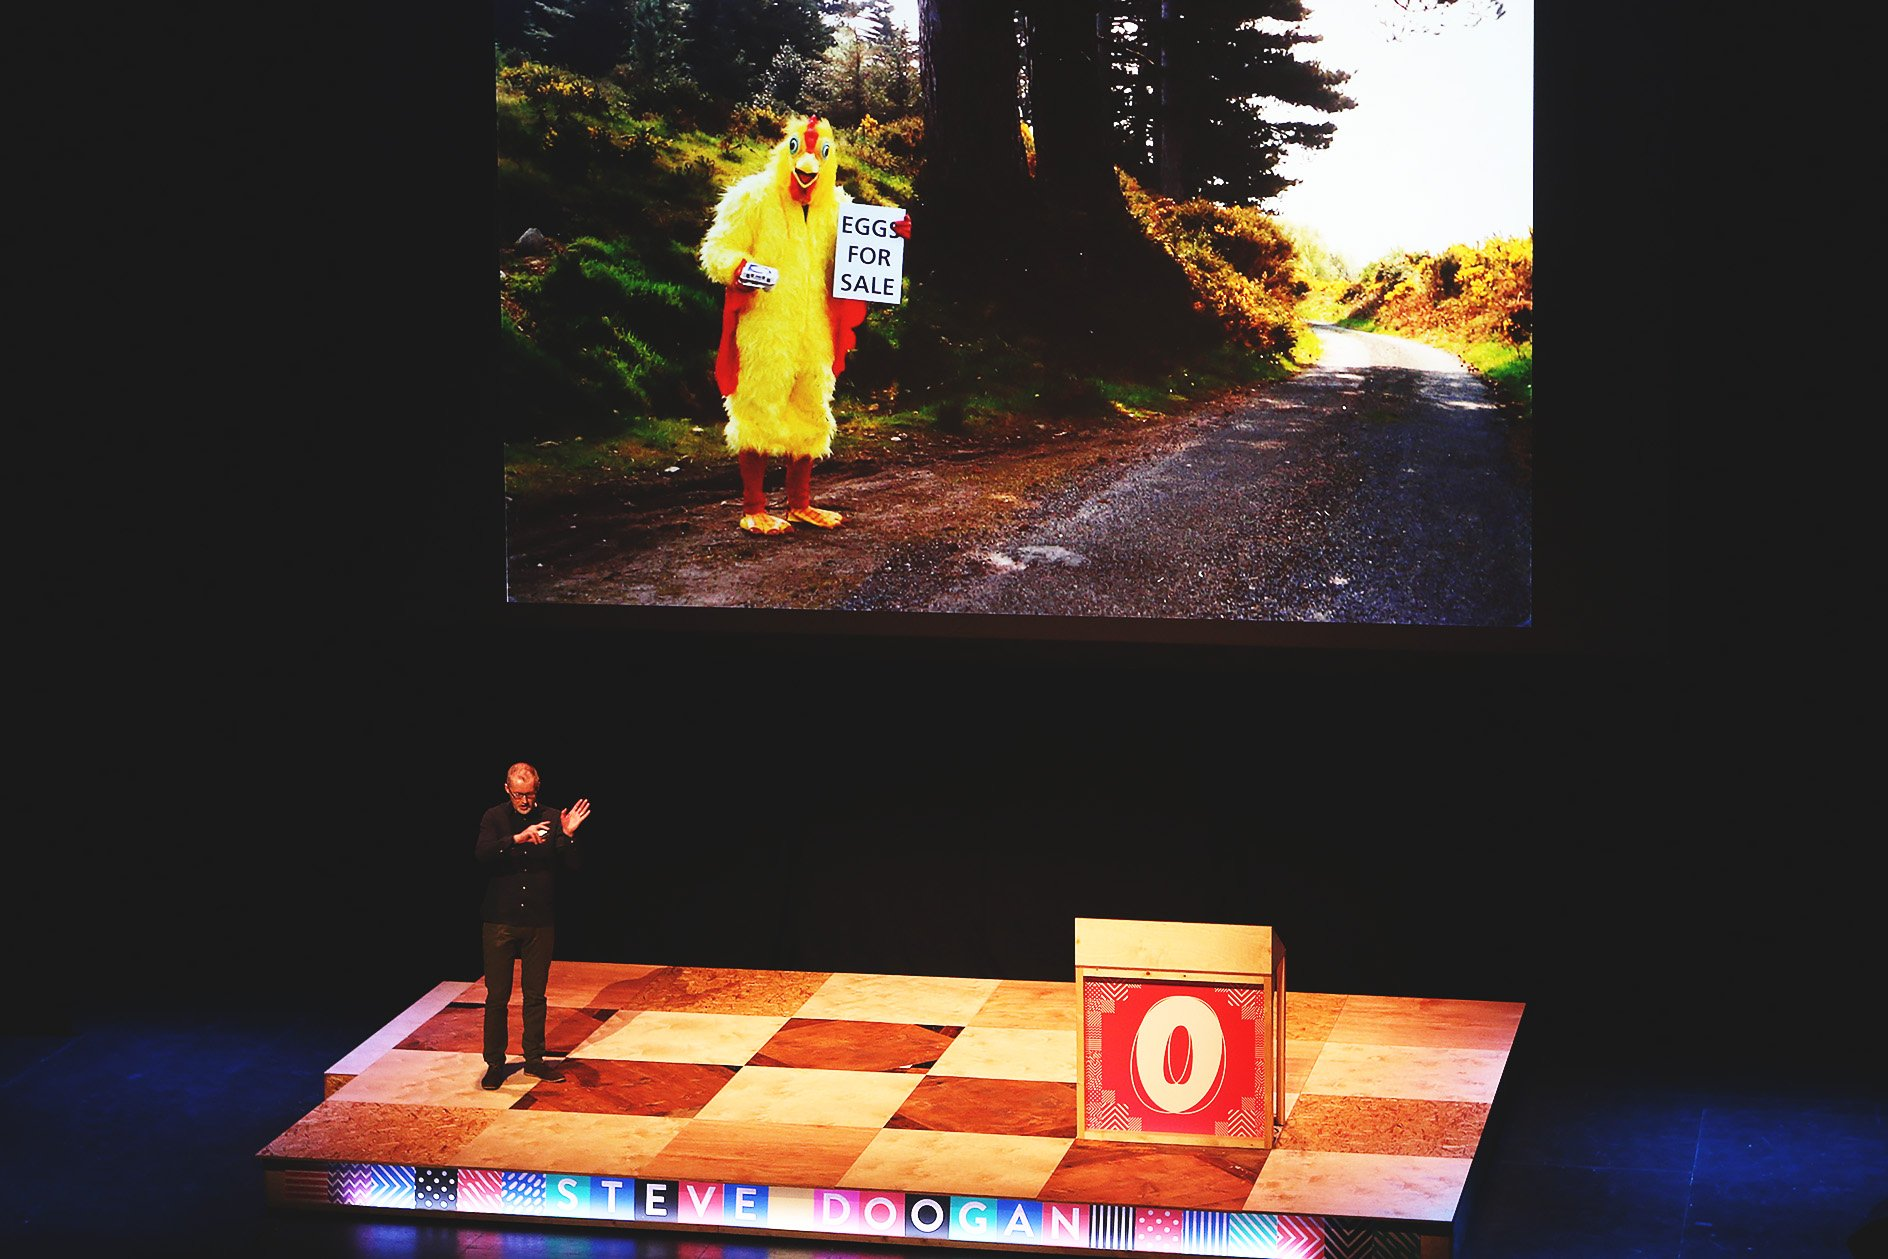 Steve Doogan at OFFSET 2015 – Chicken selling eggs